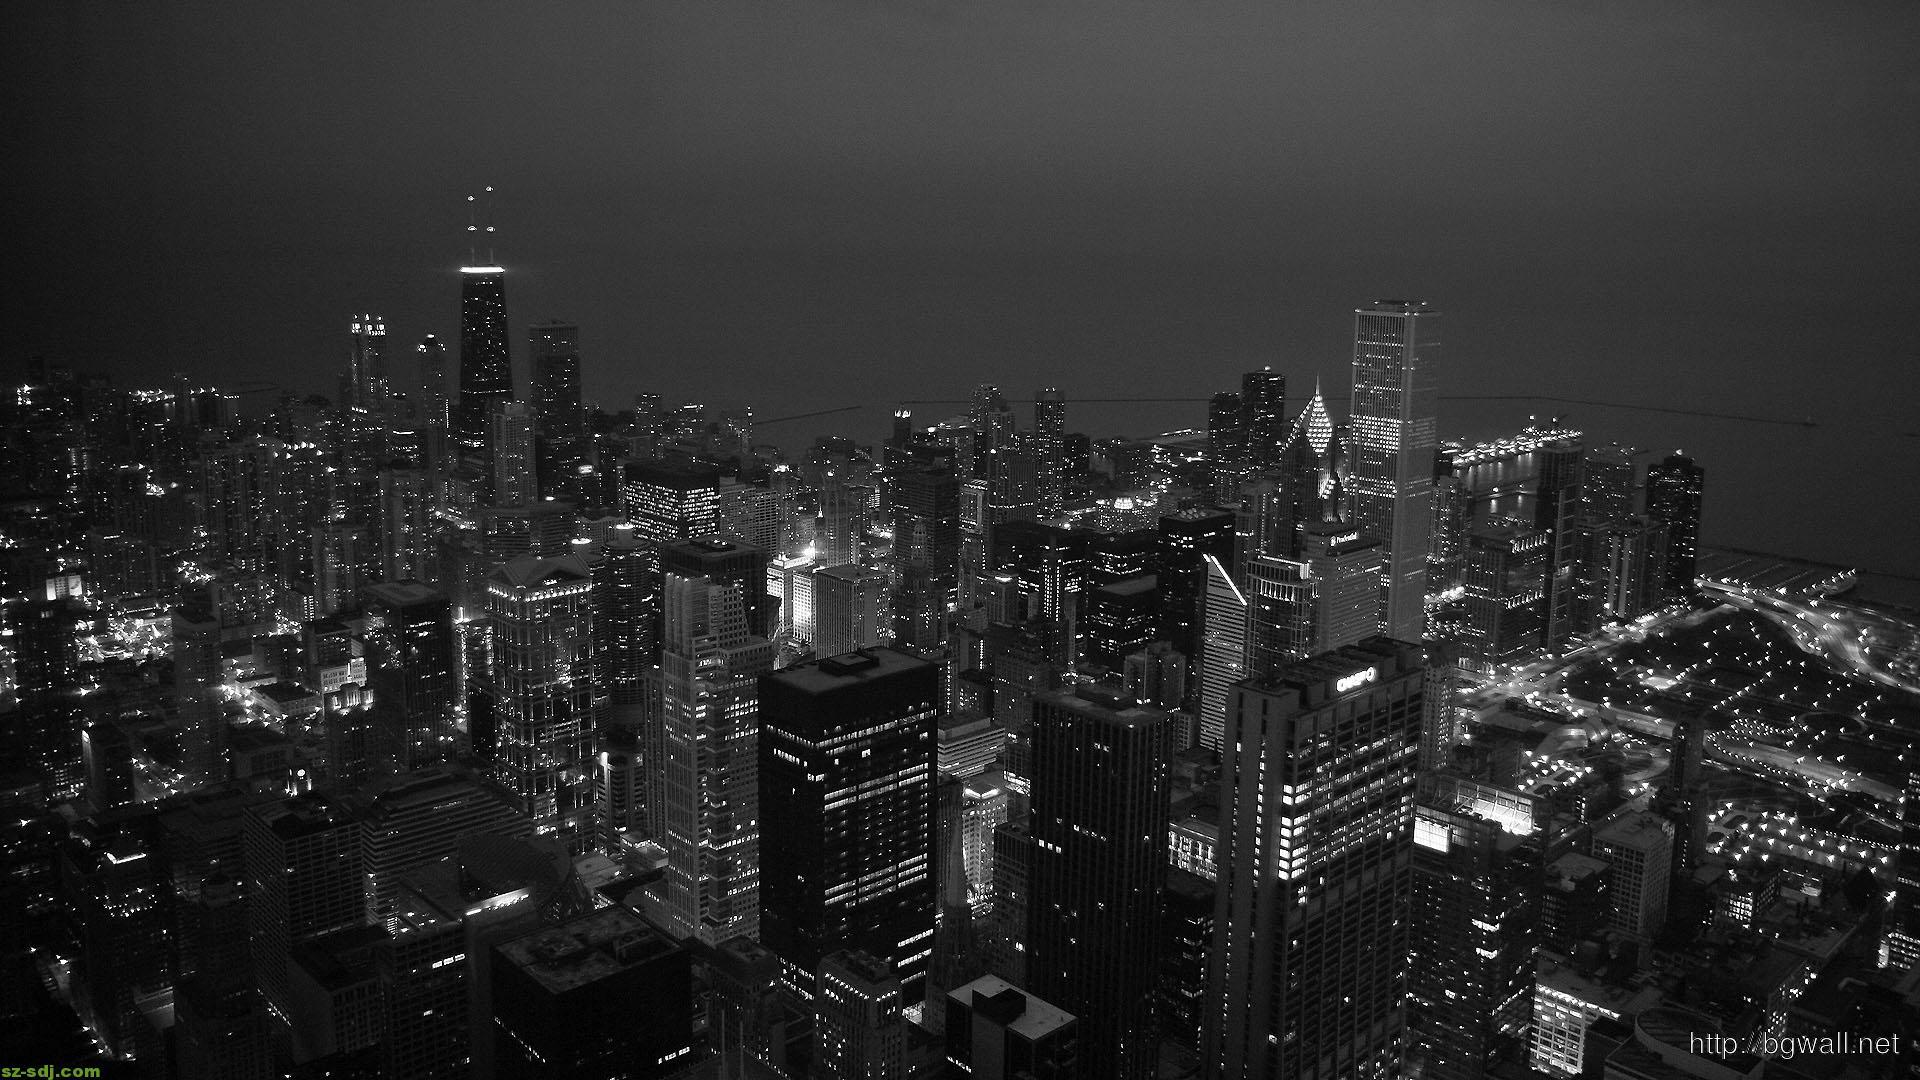 cityscape-black-and-white-wallpaper-picture